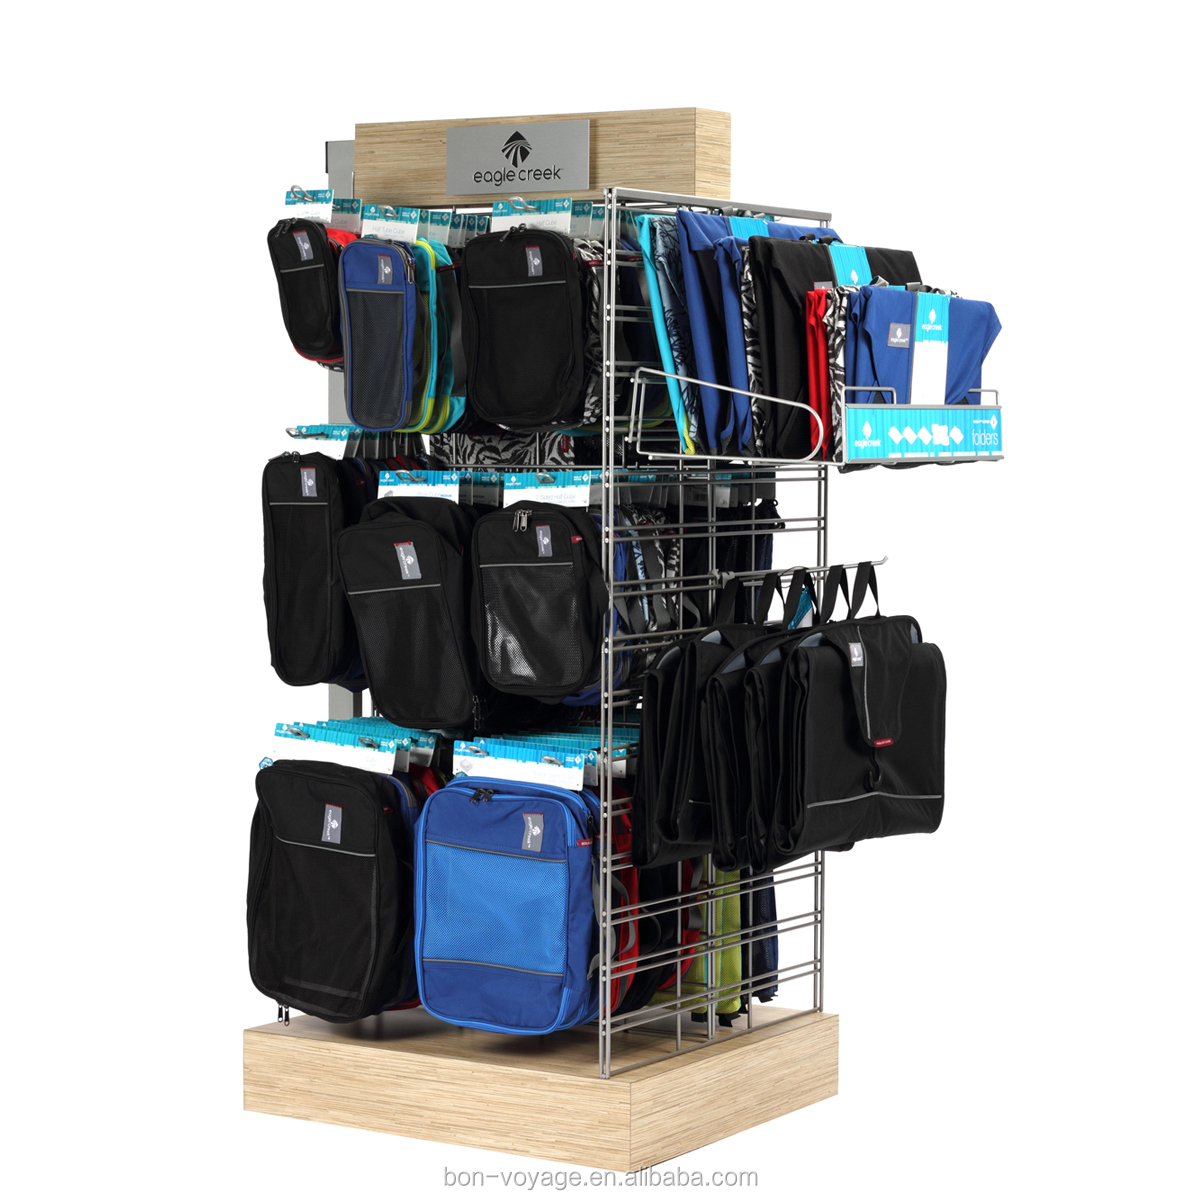 Wooden retail clothes display rack for promotion with holder display rack for hanging items